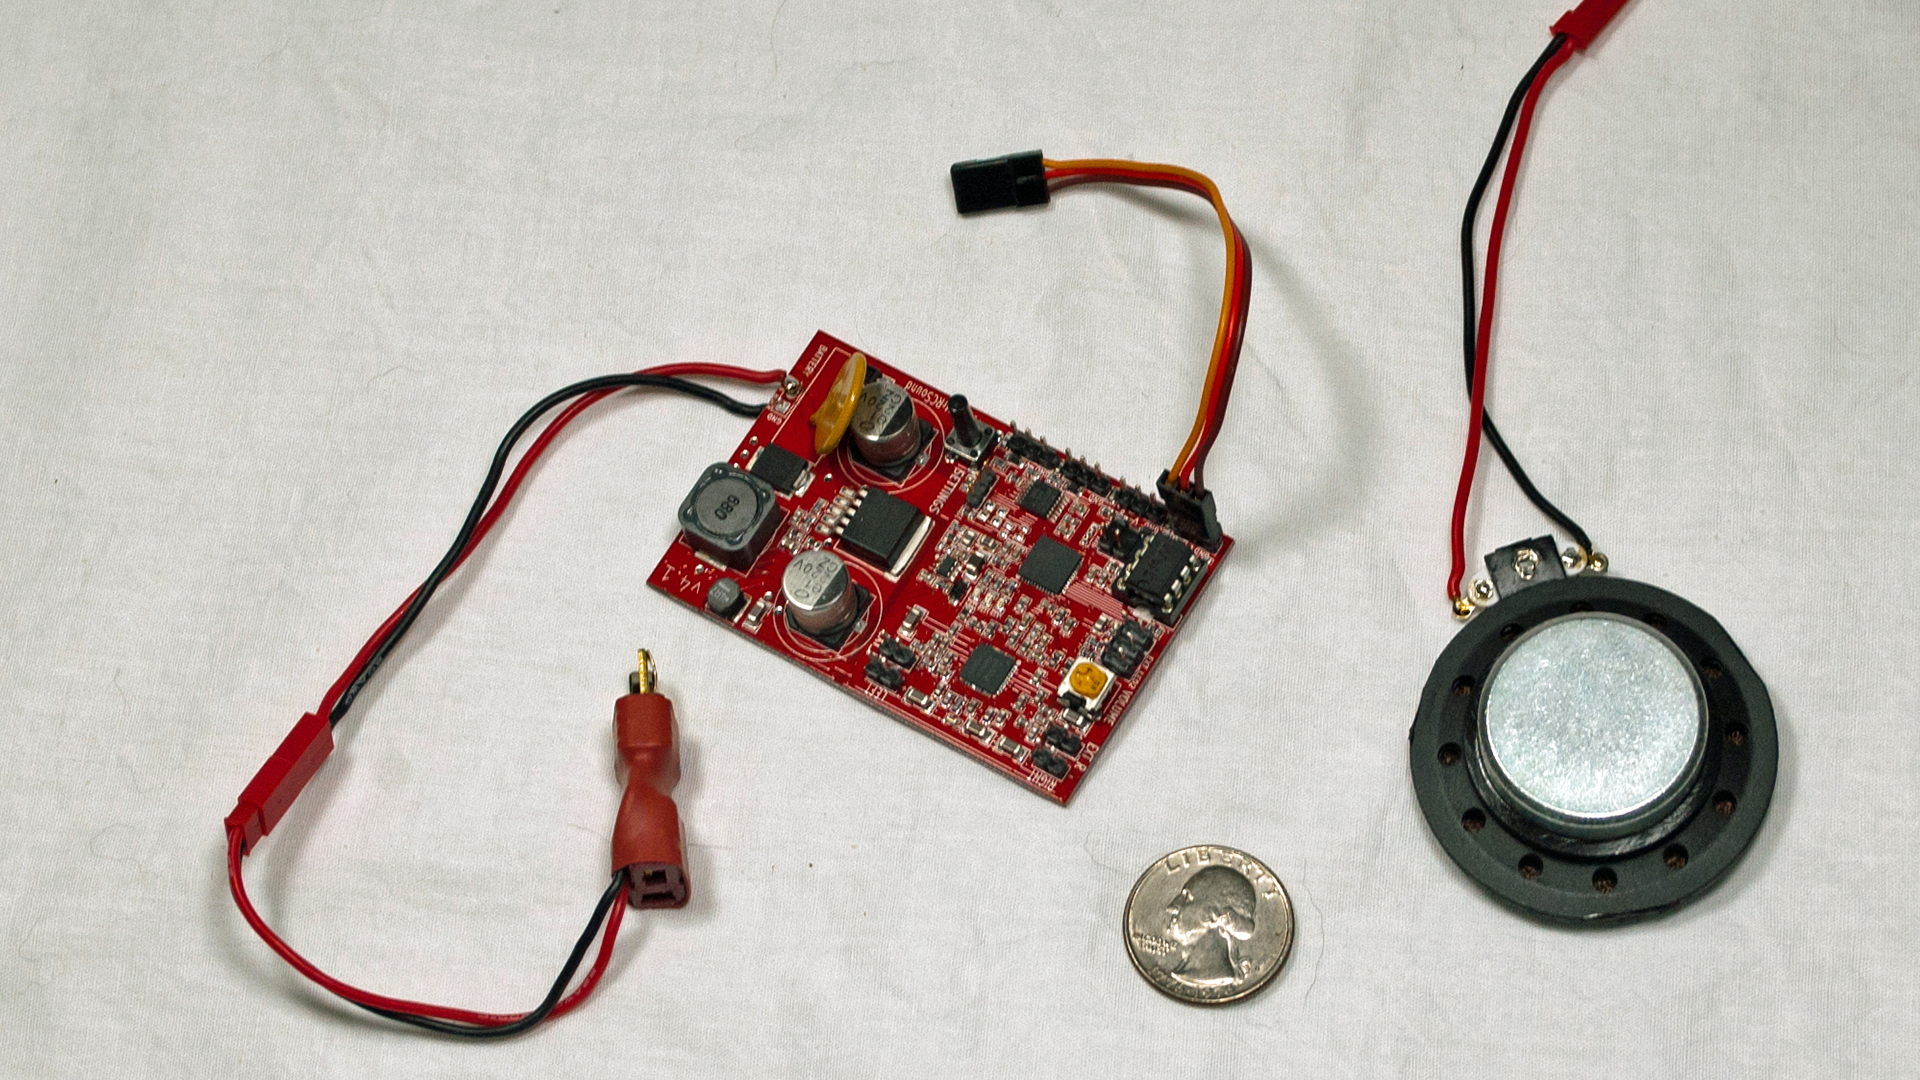 Tech Tested This Is A Kit Of Electronic Partswhich Will Allow You To Build Mw Am Rc Sound System Has Very Few Parts Which What Convinced Me Try It Creates Convincing Engine Like Sounds For Airplanes